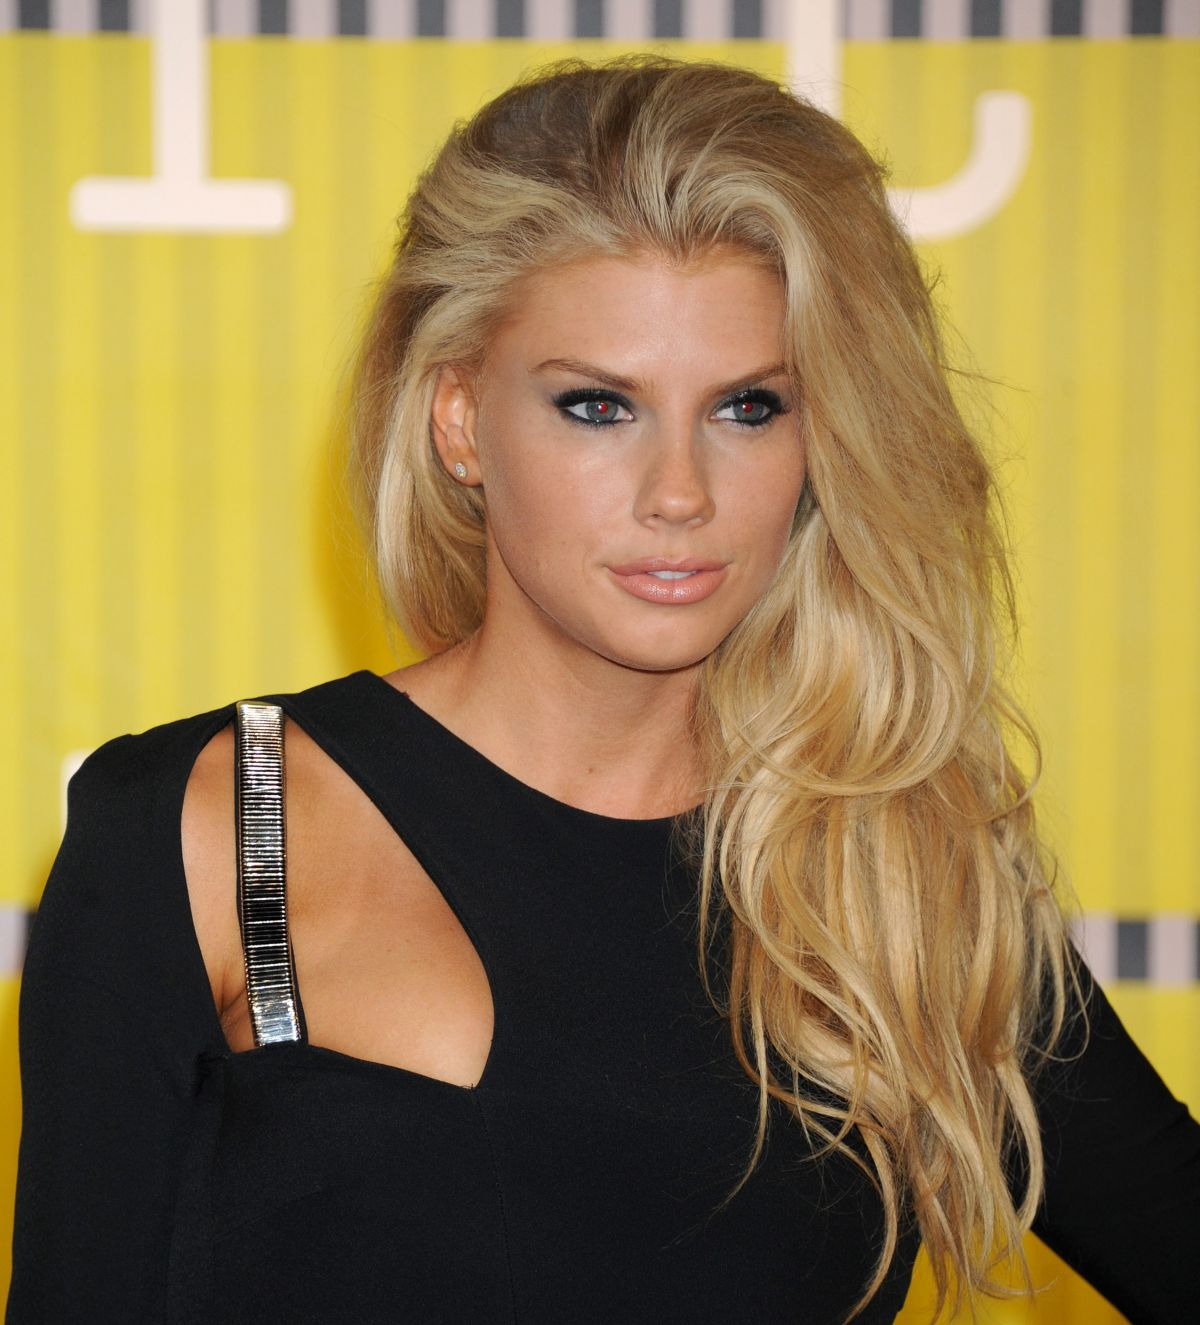 HQ Photos of Charlotte Mckinney At Mtv Video Music Awards 2015 In Los Angeles